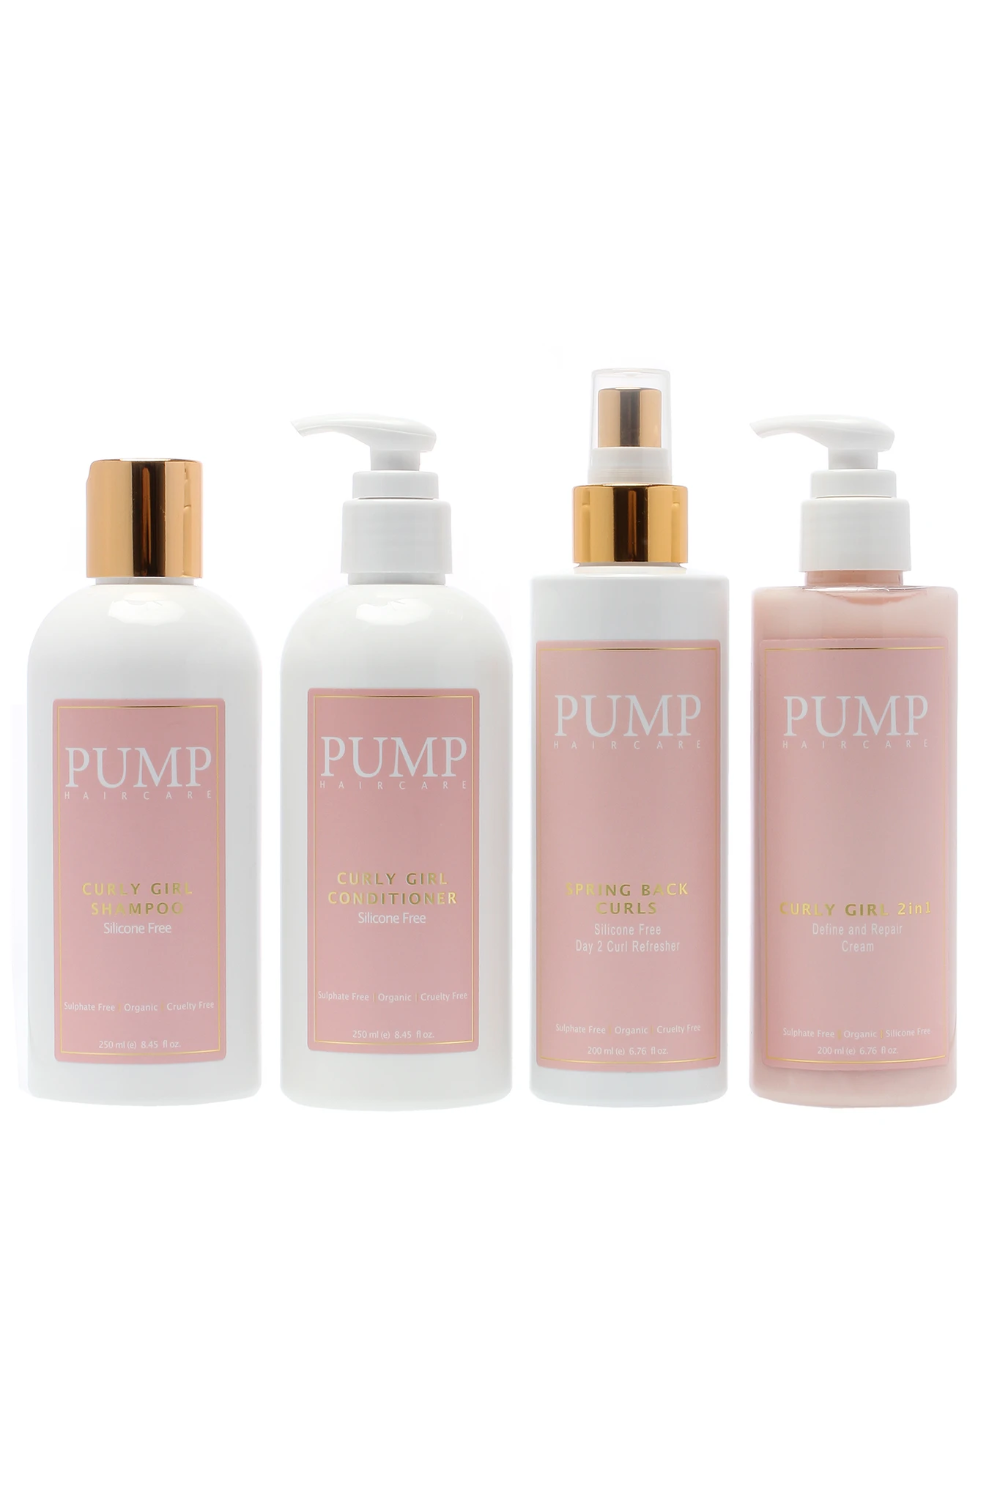 Pump Curly Girl Friendly Pack Pump Haircare in 2020